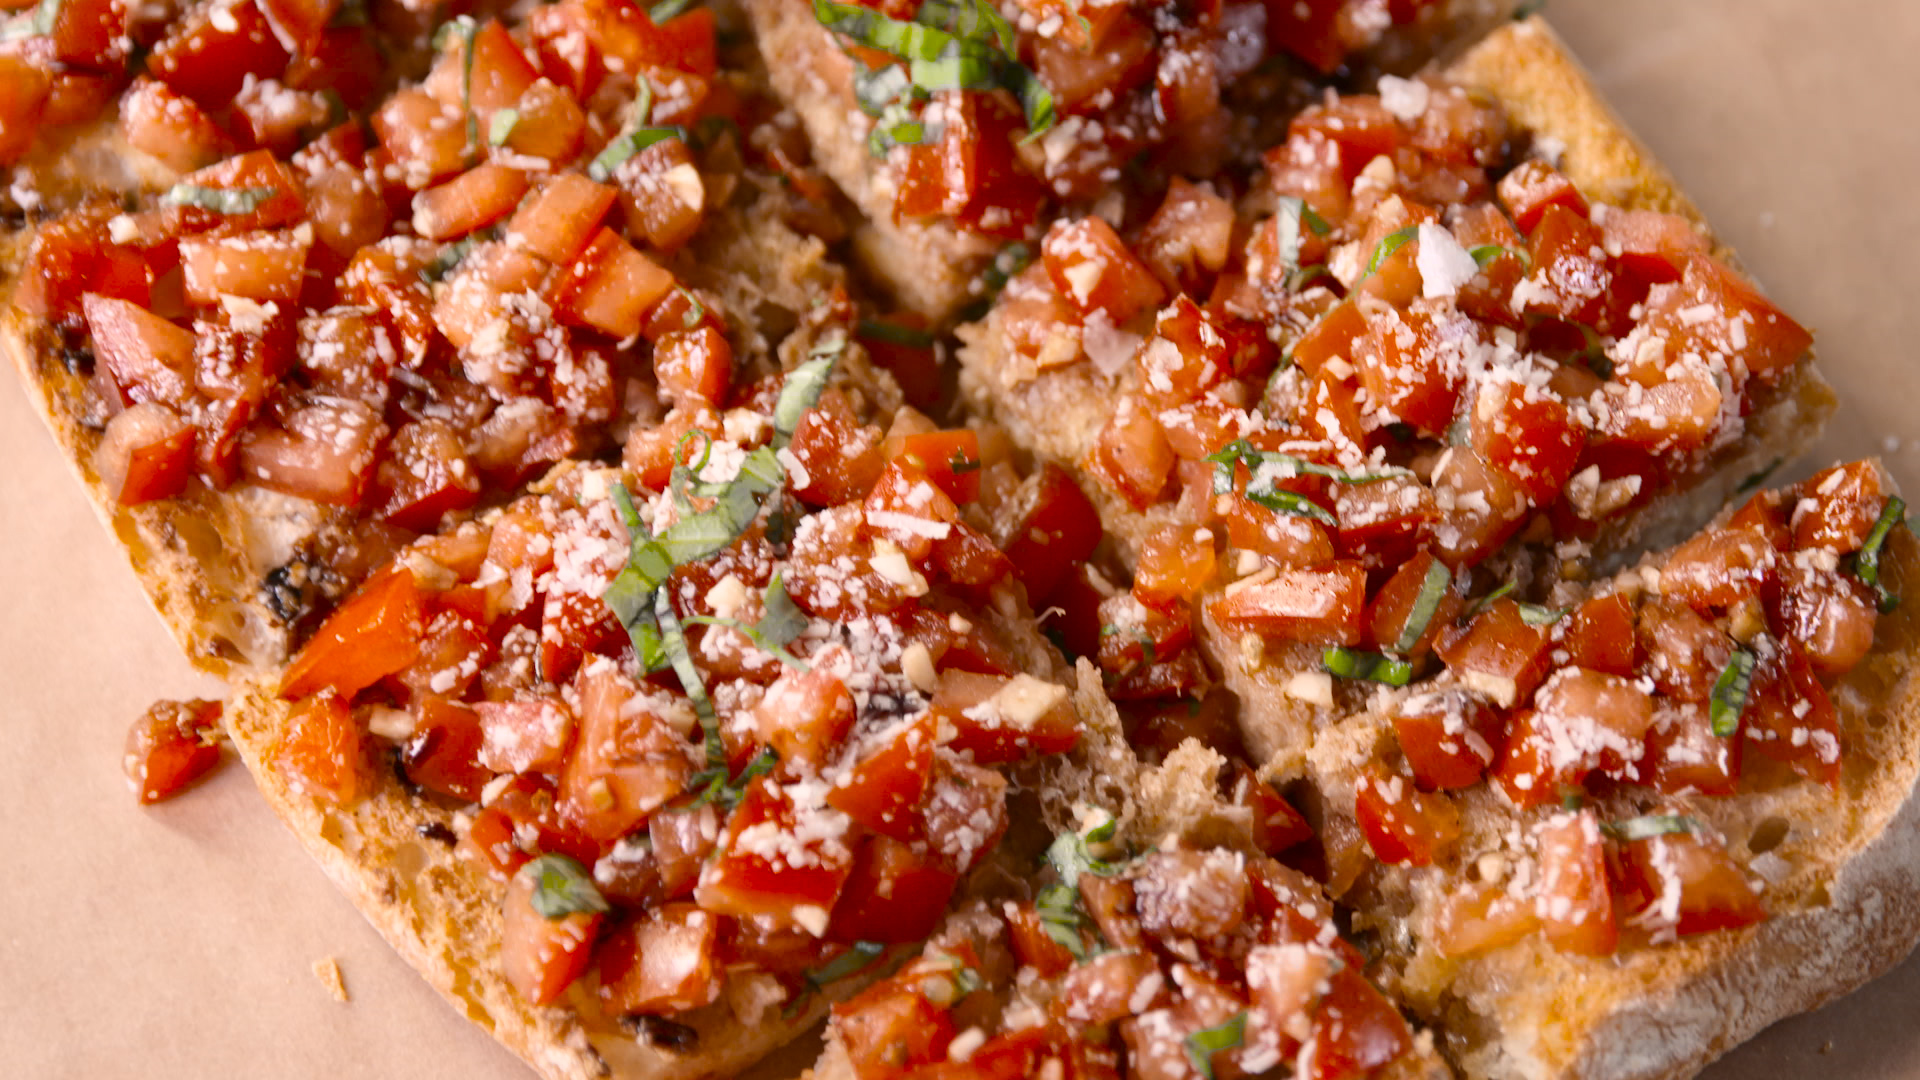 How to Make a Super-Size Bruschetta